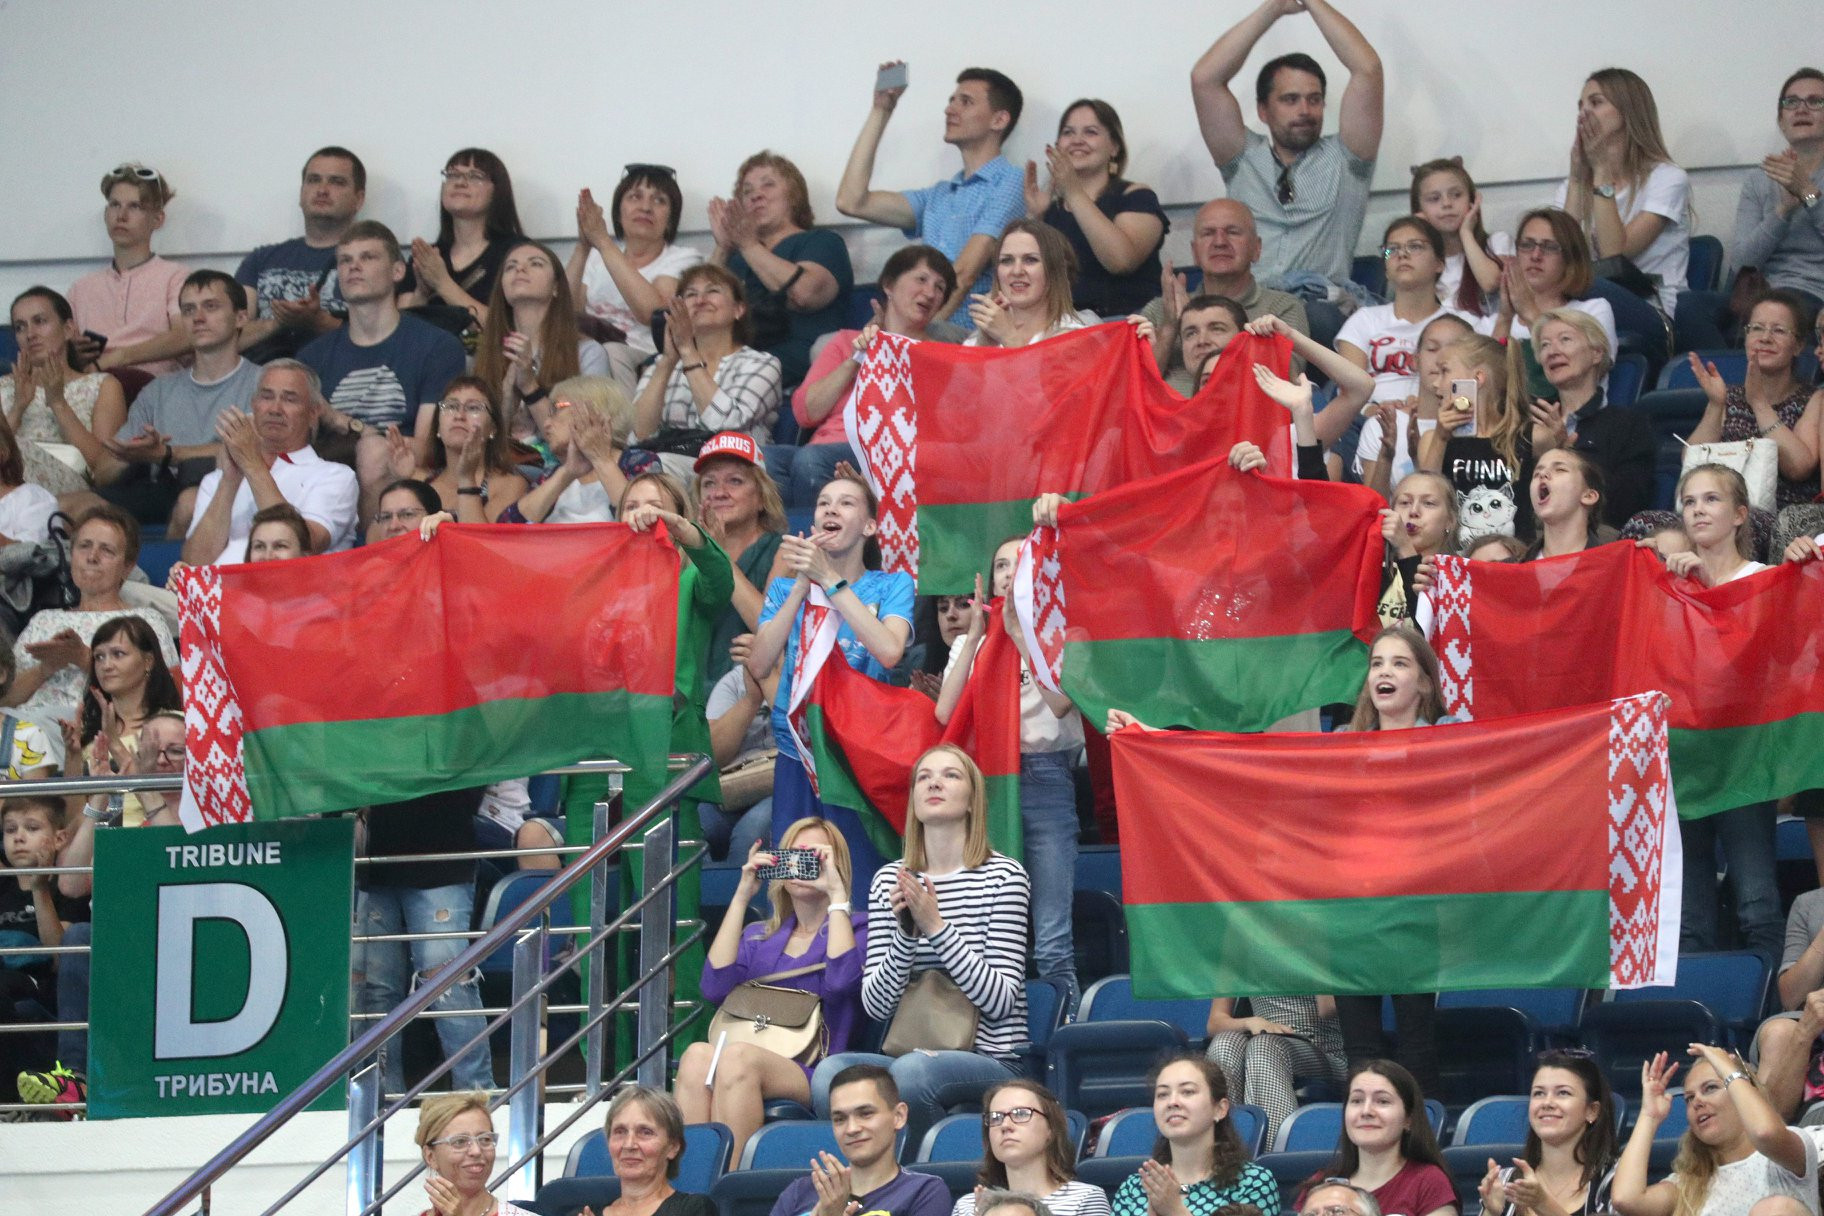 A sizeable Belarusian crowd were in attendance at Minsk Arena, where rhythmic and acrobatic gymnastics were taking place ©Minsk 2019